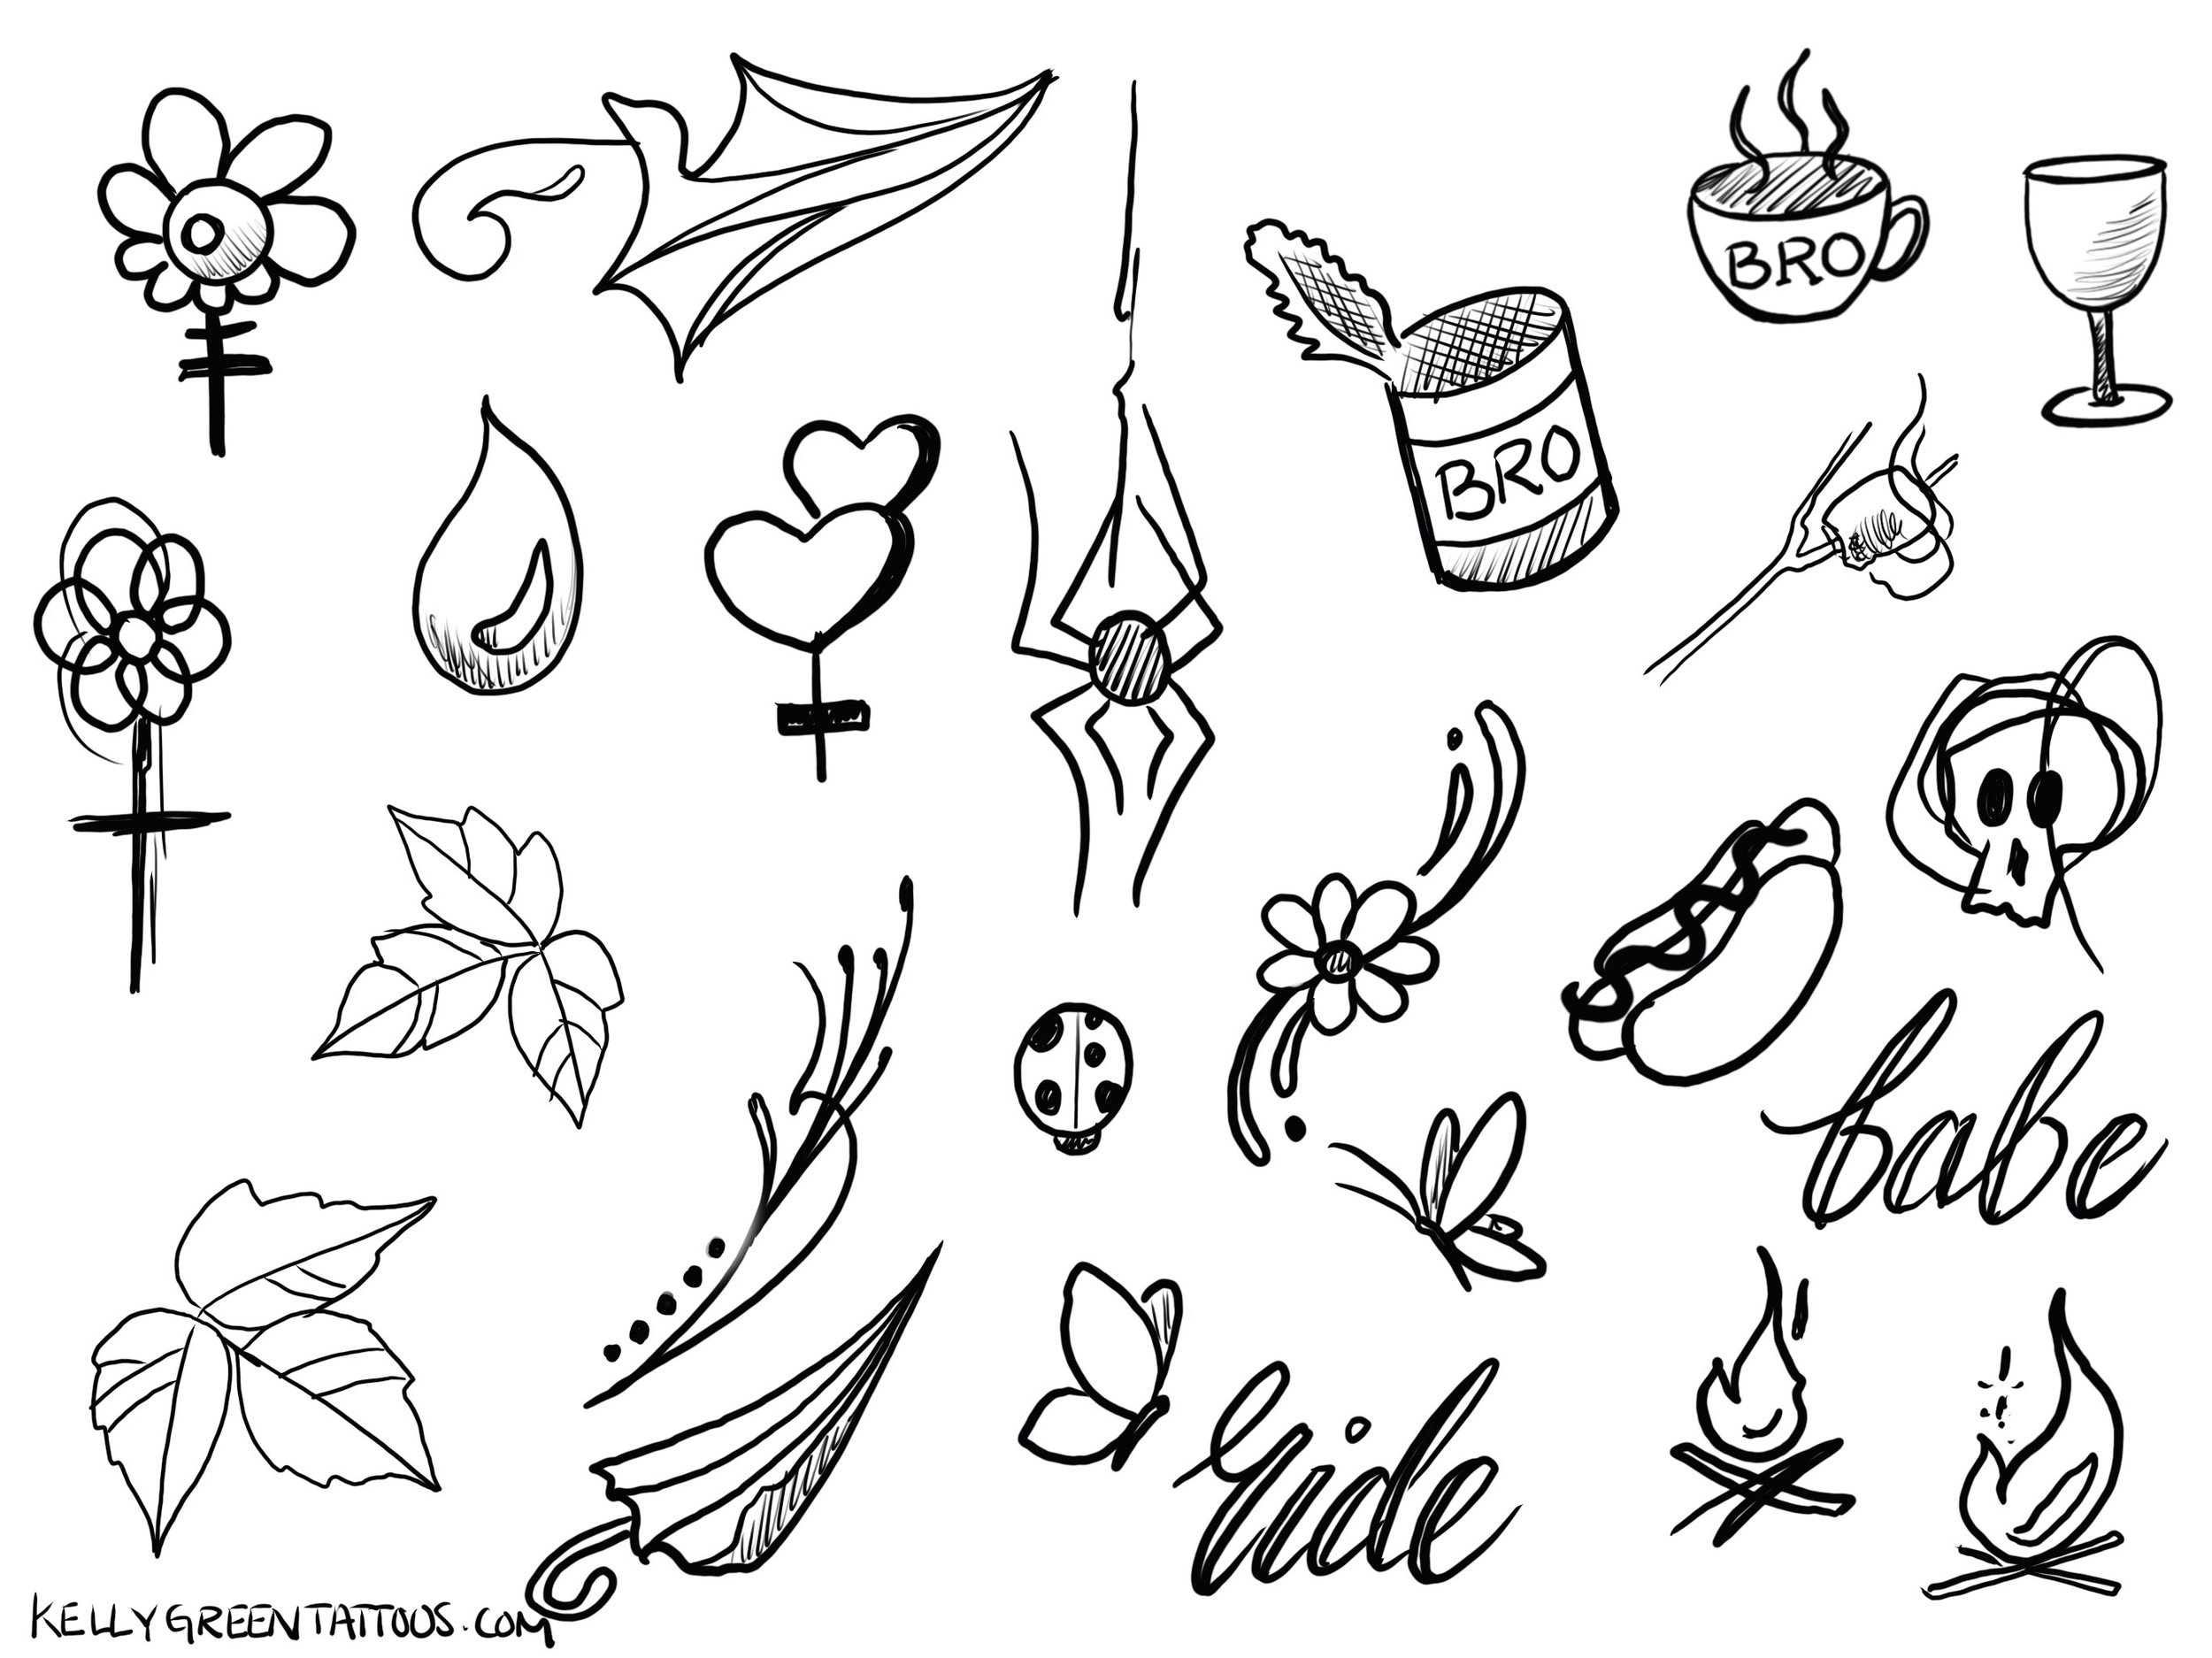 Babes Ride Out East Coast 3 Tattoo Flash